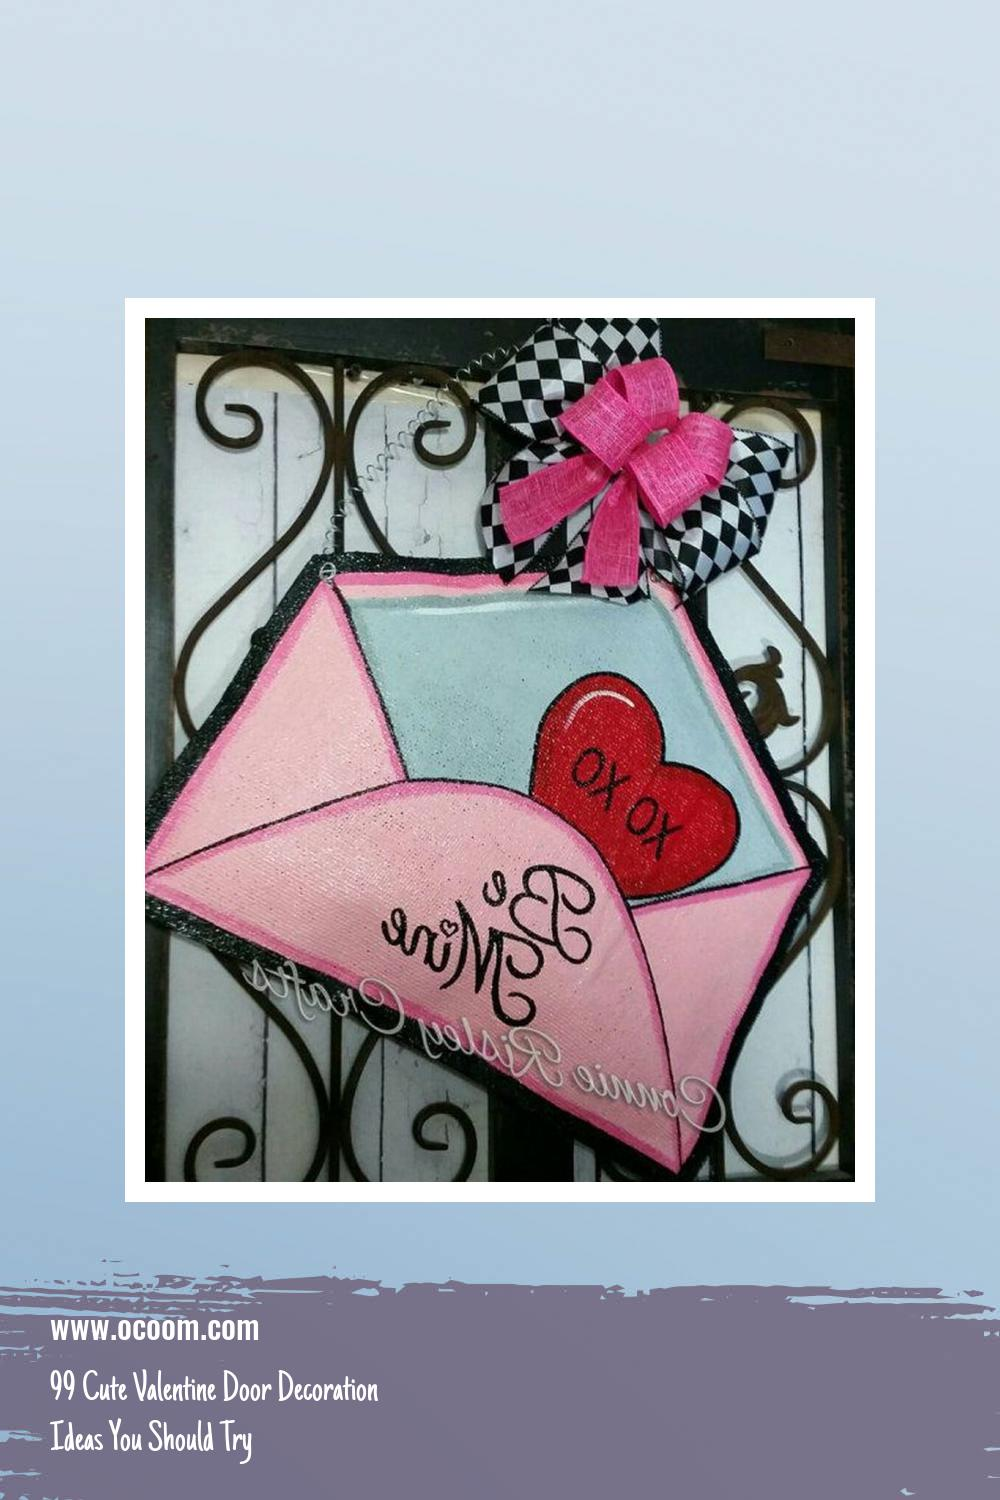 99 Cute Valentine Door Decoration Ideas You Should Try 5